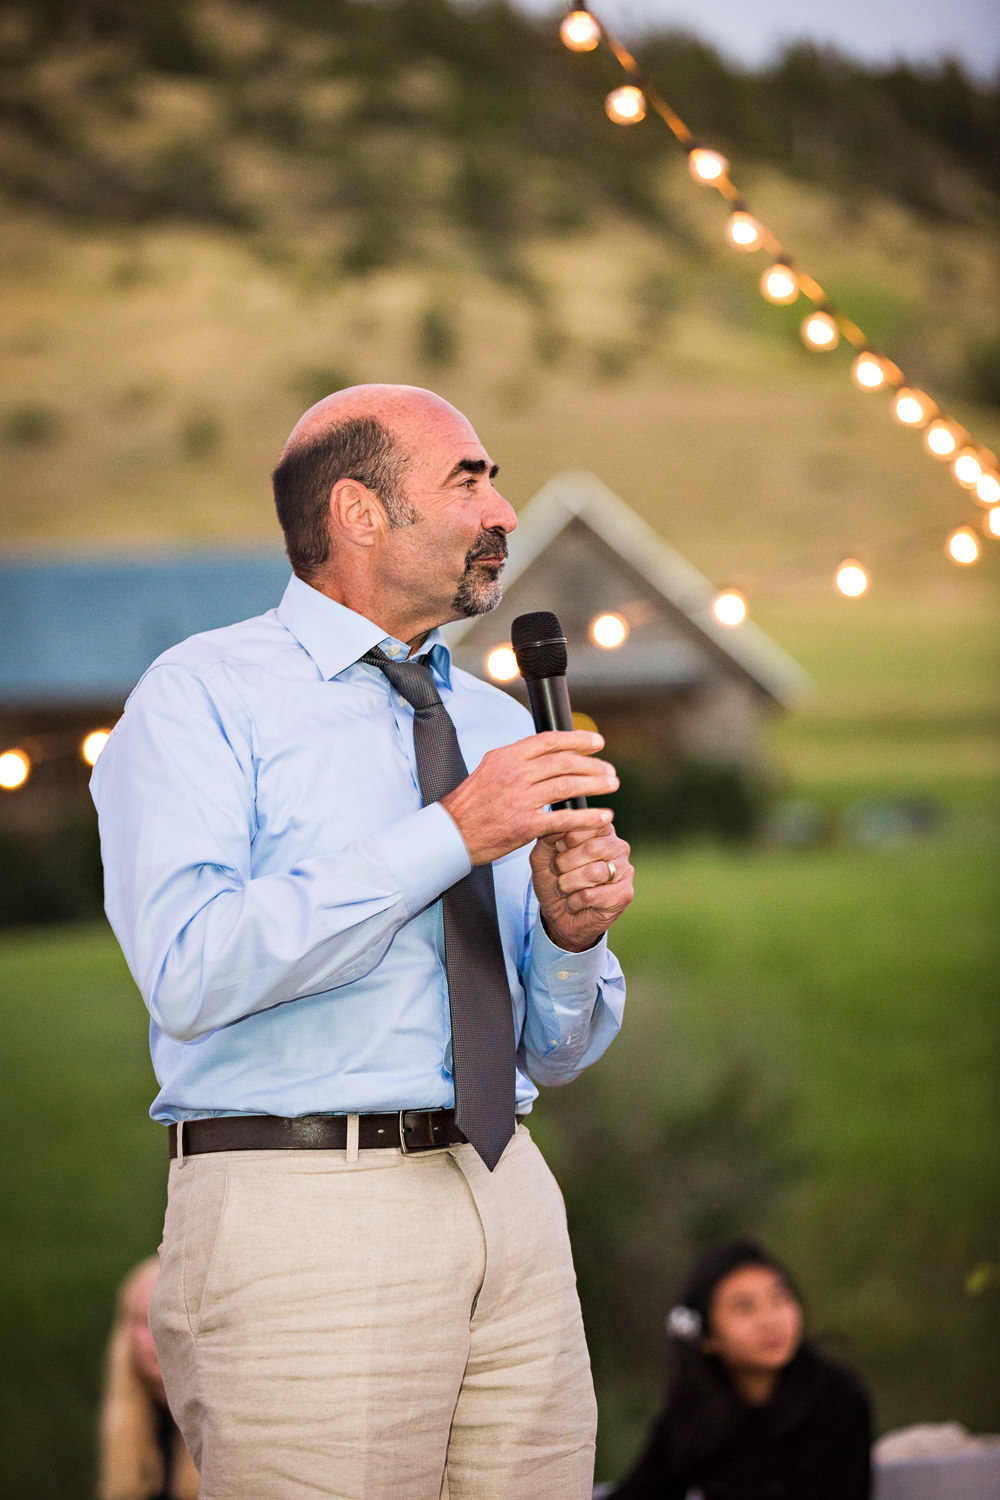 mcleod-montana-wedding-father-toasts-bride.jpg